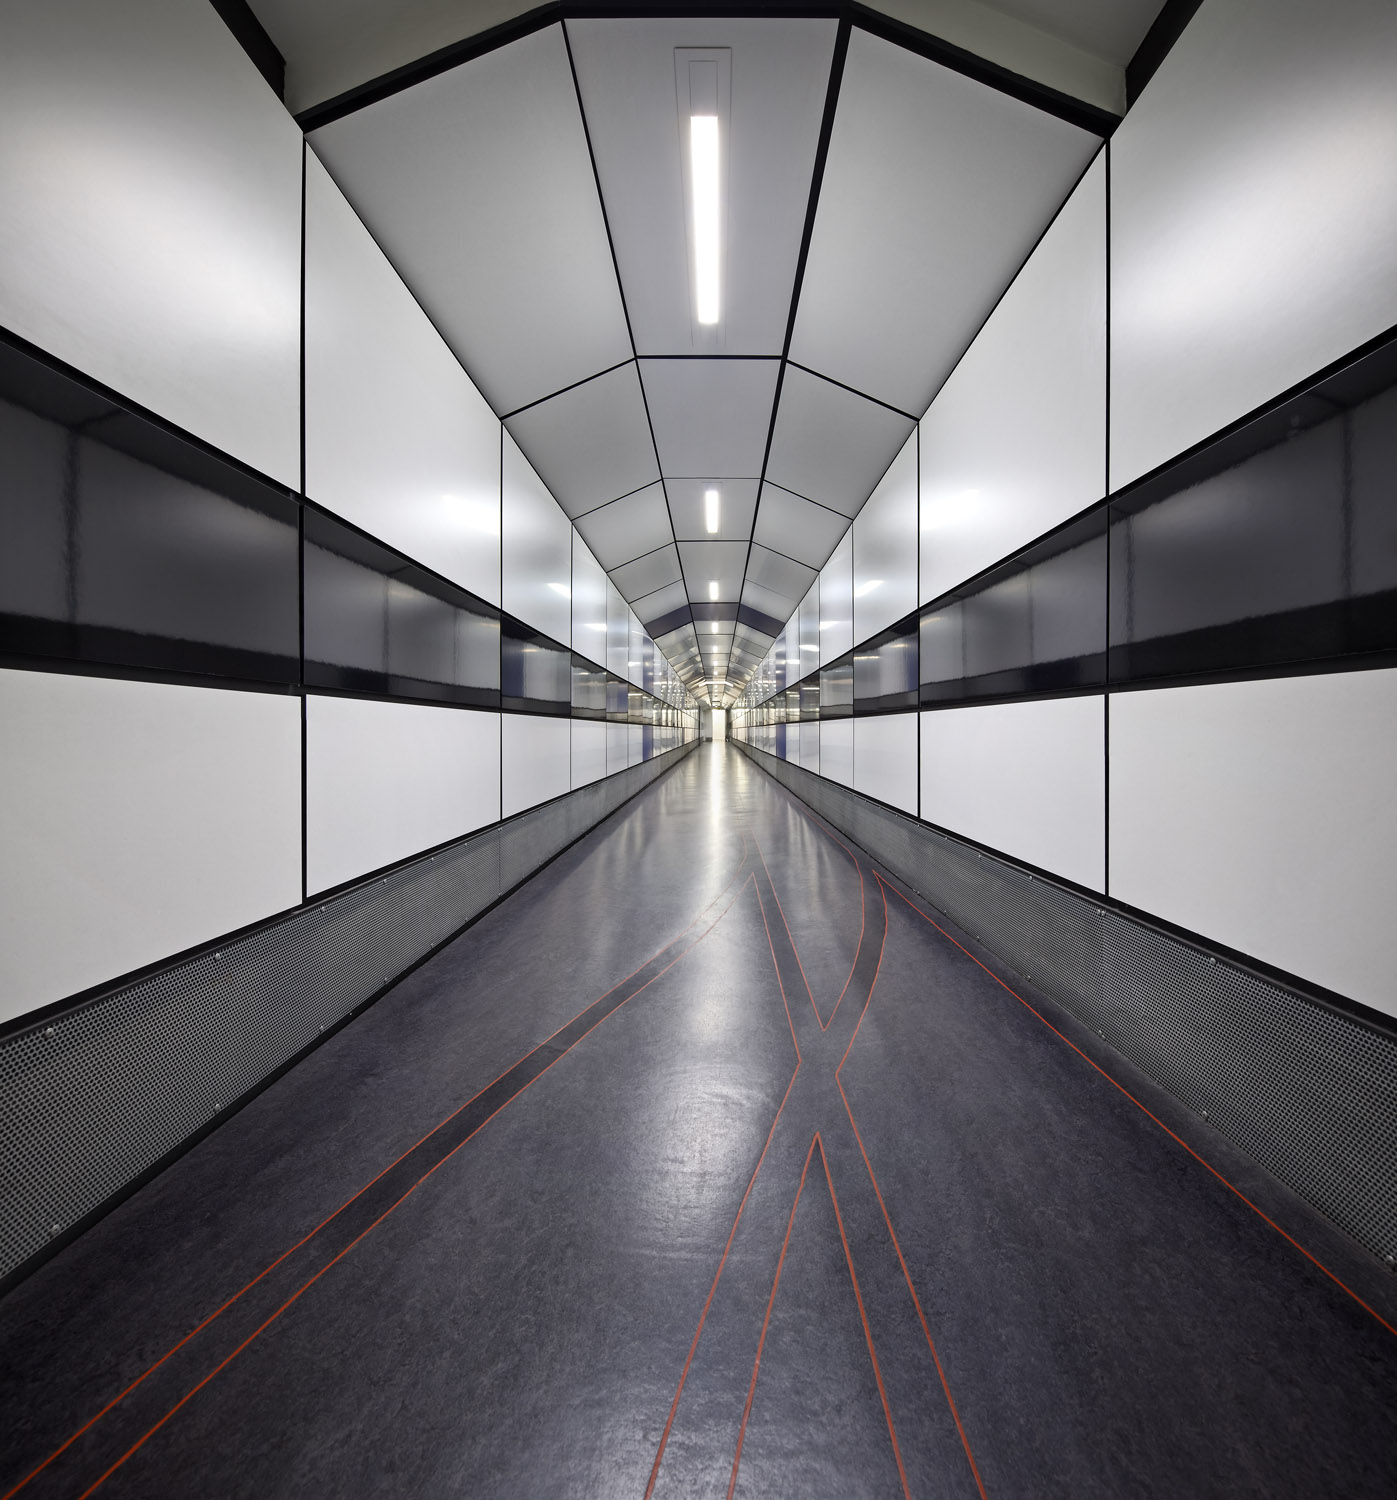 The Gladstone Link tunnel that connects the Bodleian Library to the Radcliffe Camera - part of the Bodleian Libraries, University of Oxford, Oxford, UK